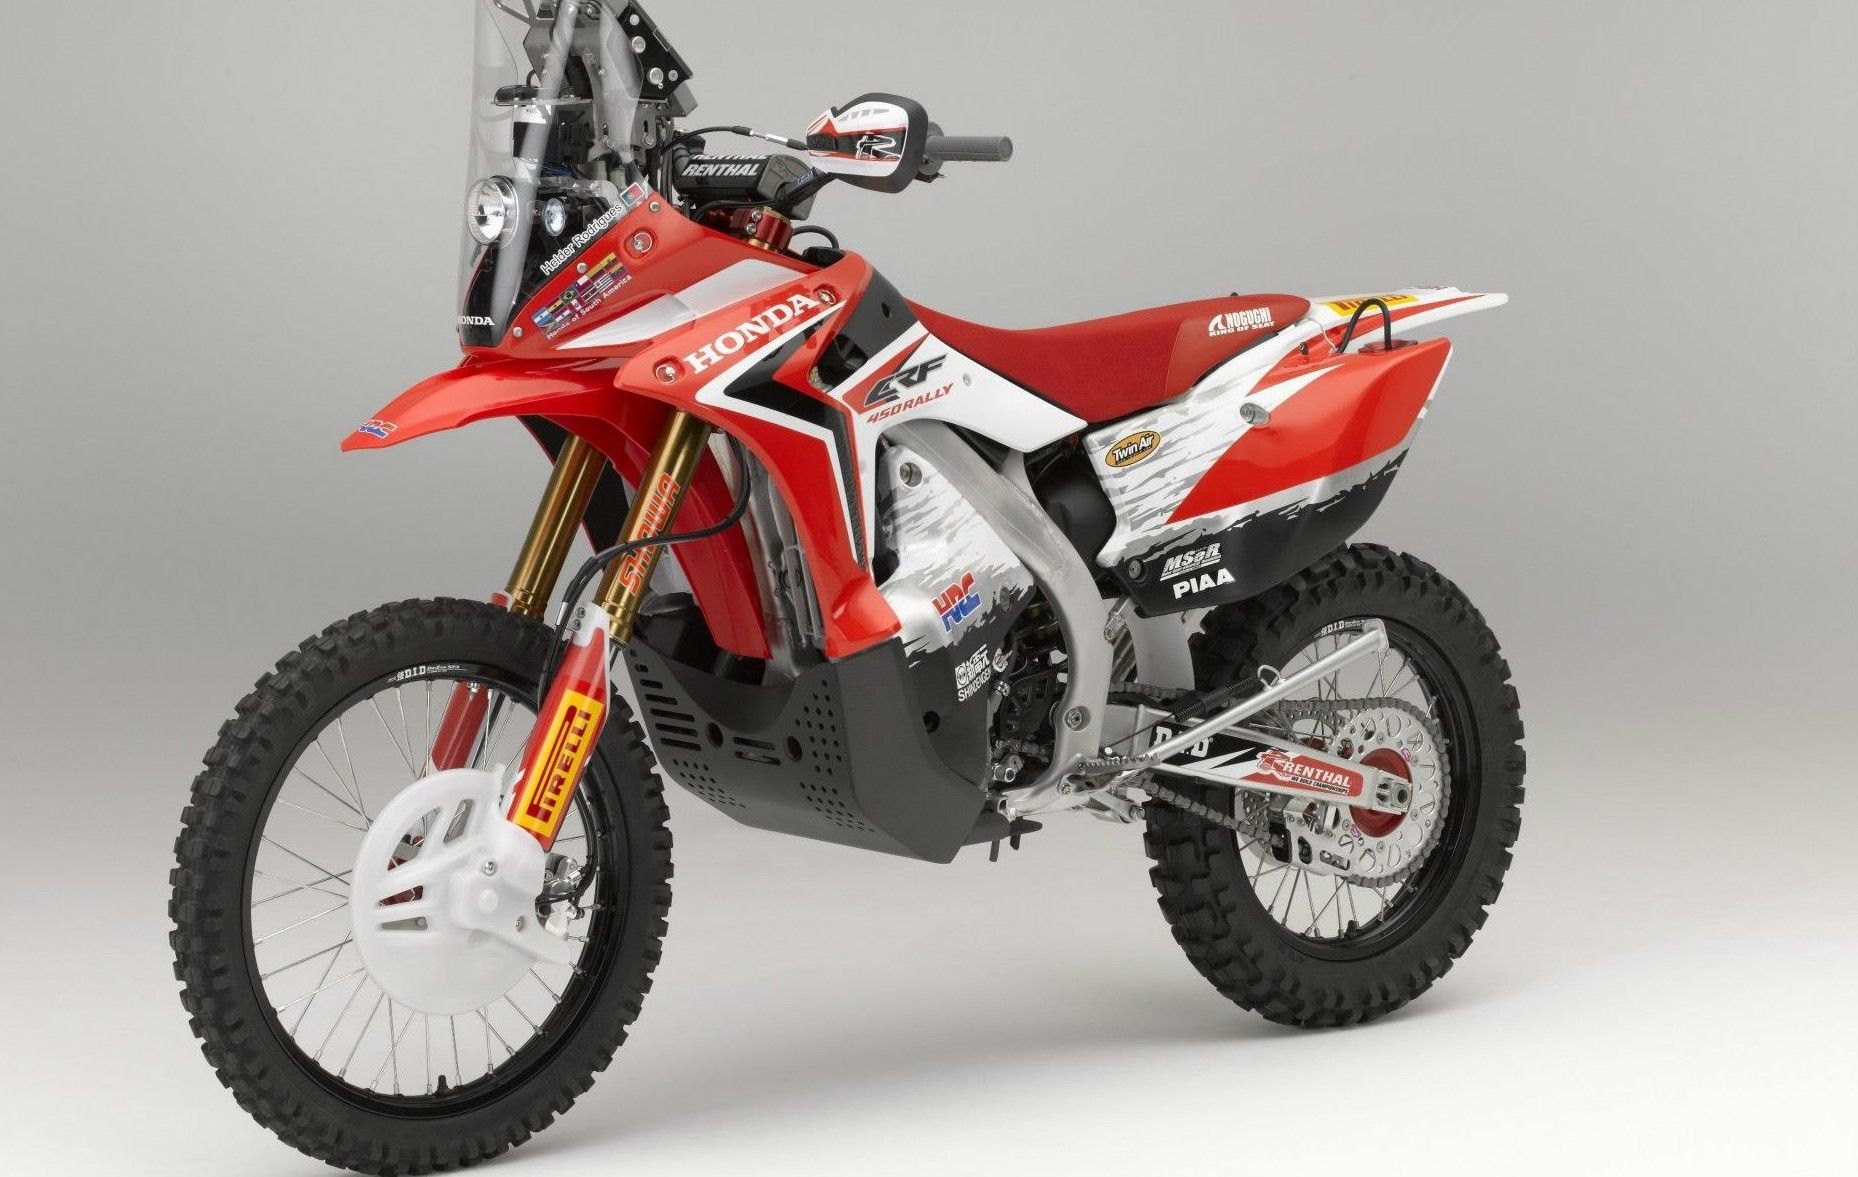 yamaha dual sport 450 - google search | motorcycles | pinterest